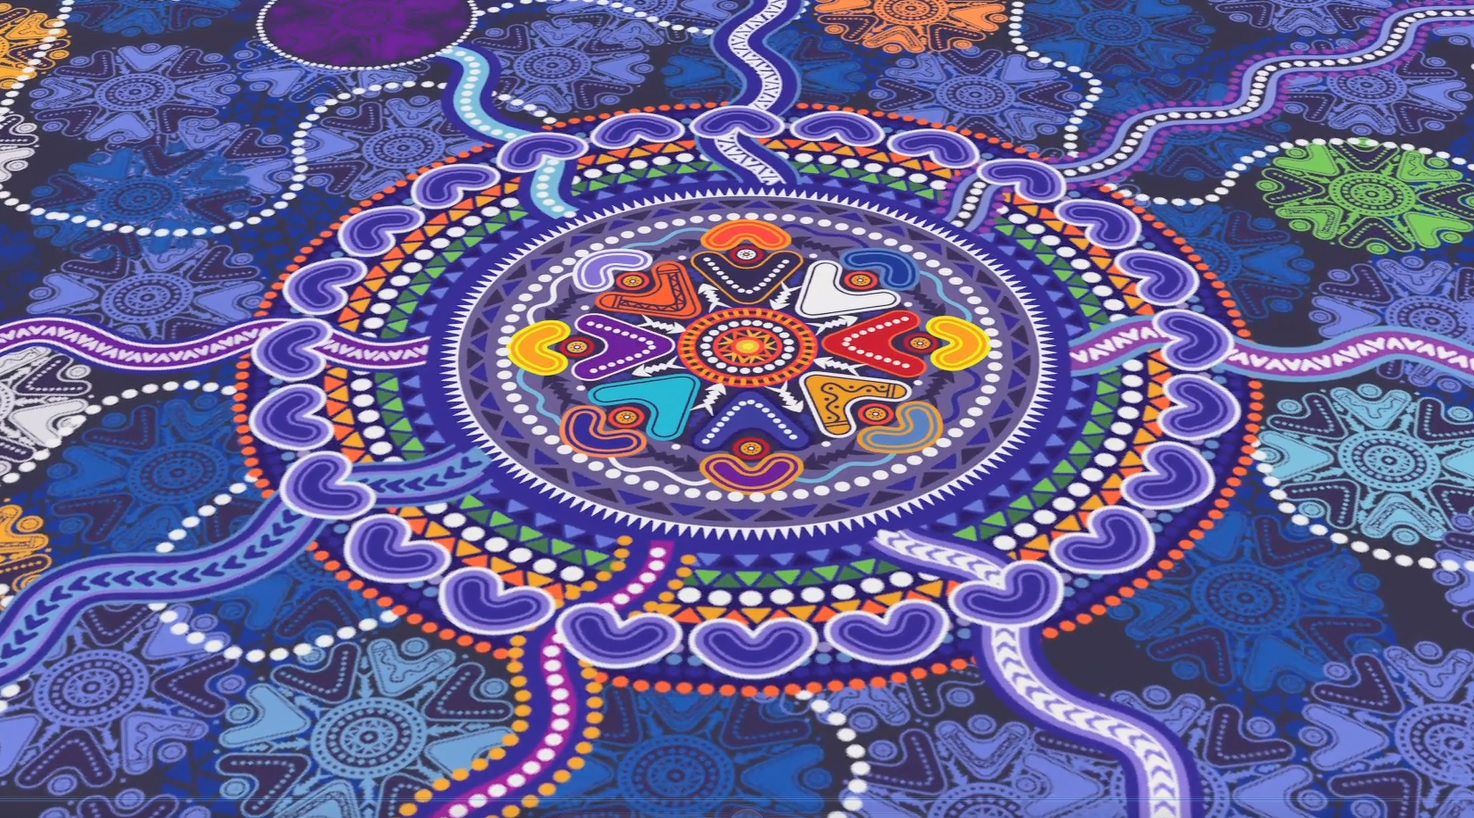 Indigenous art is transforming business culture in Australia